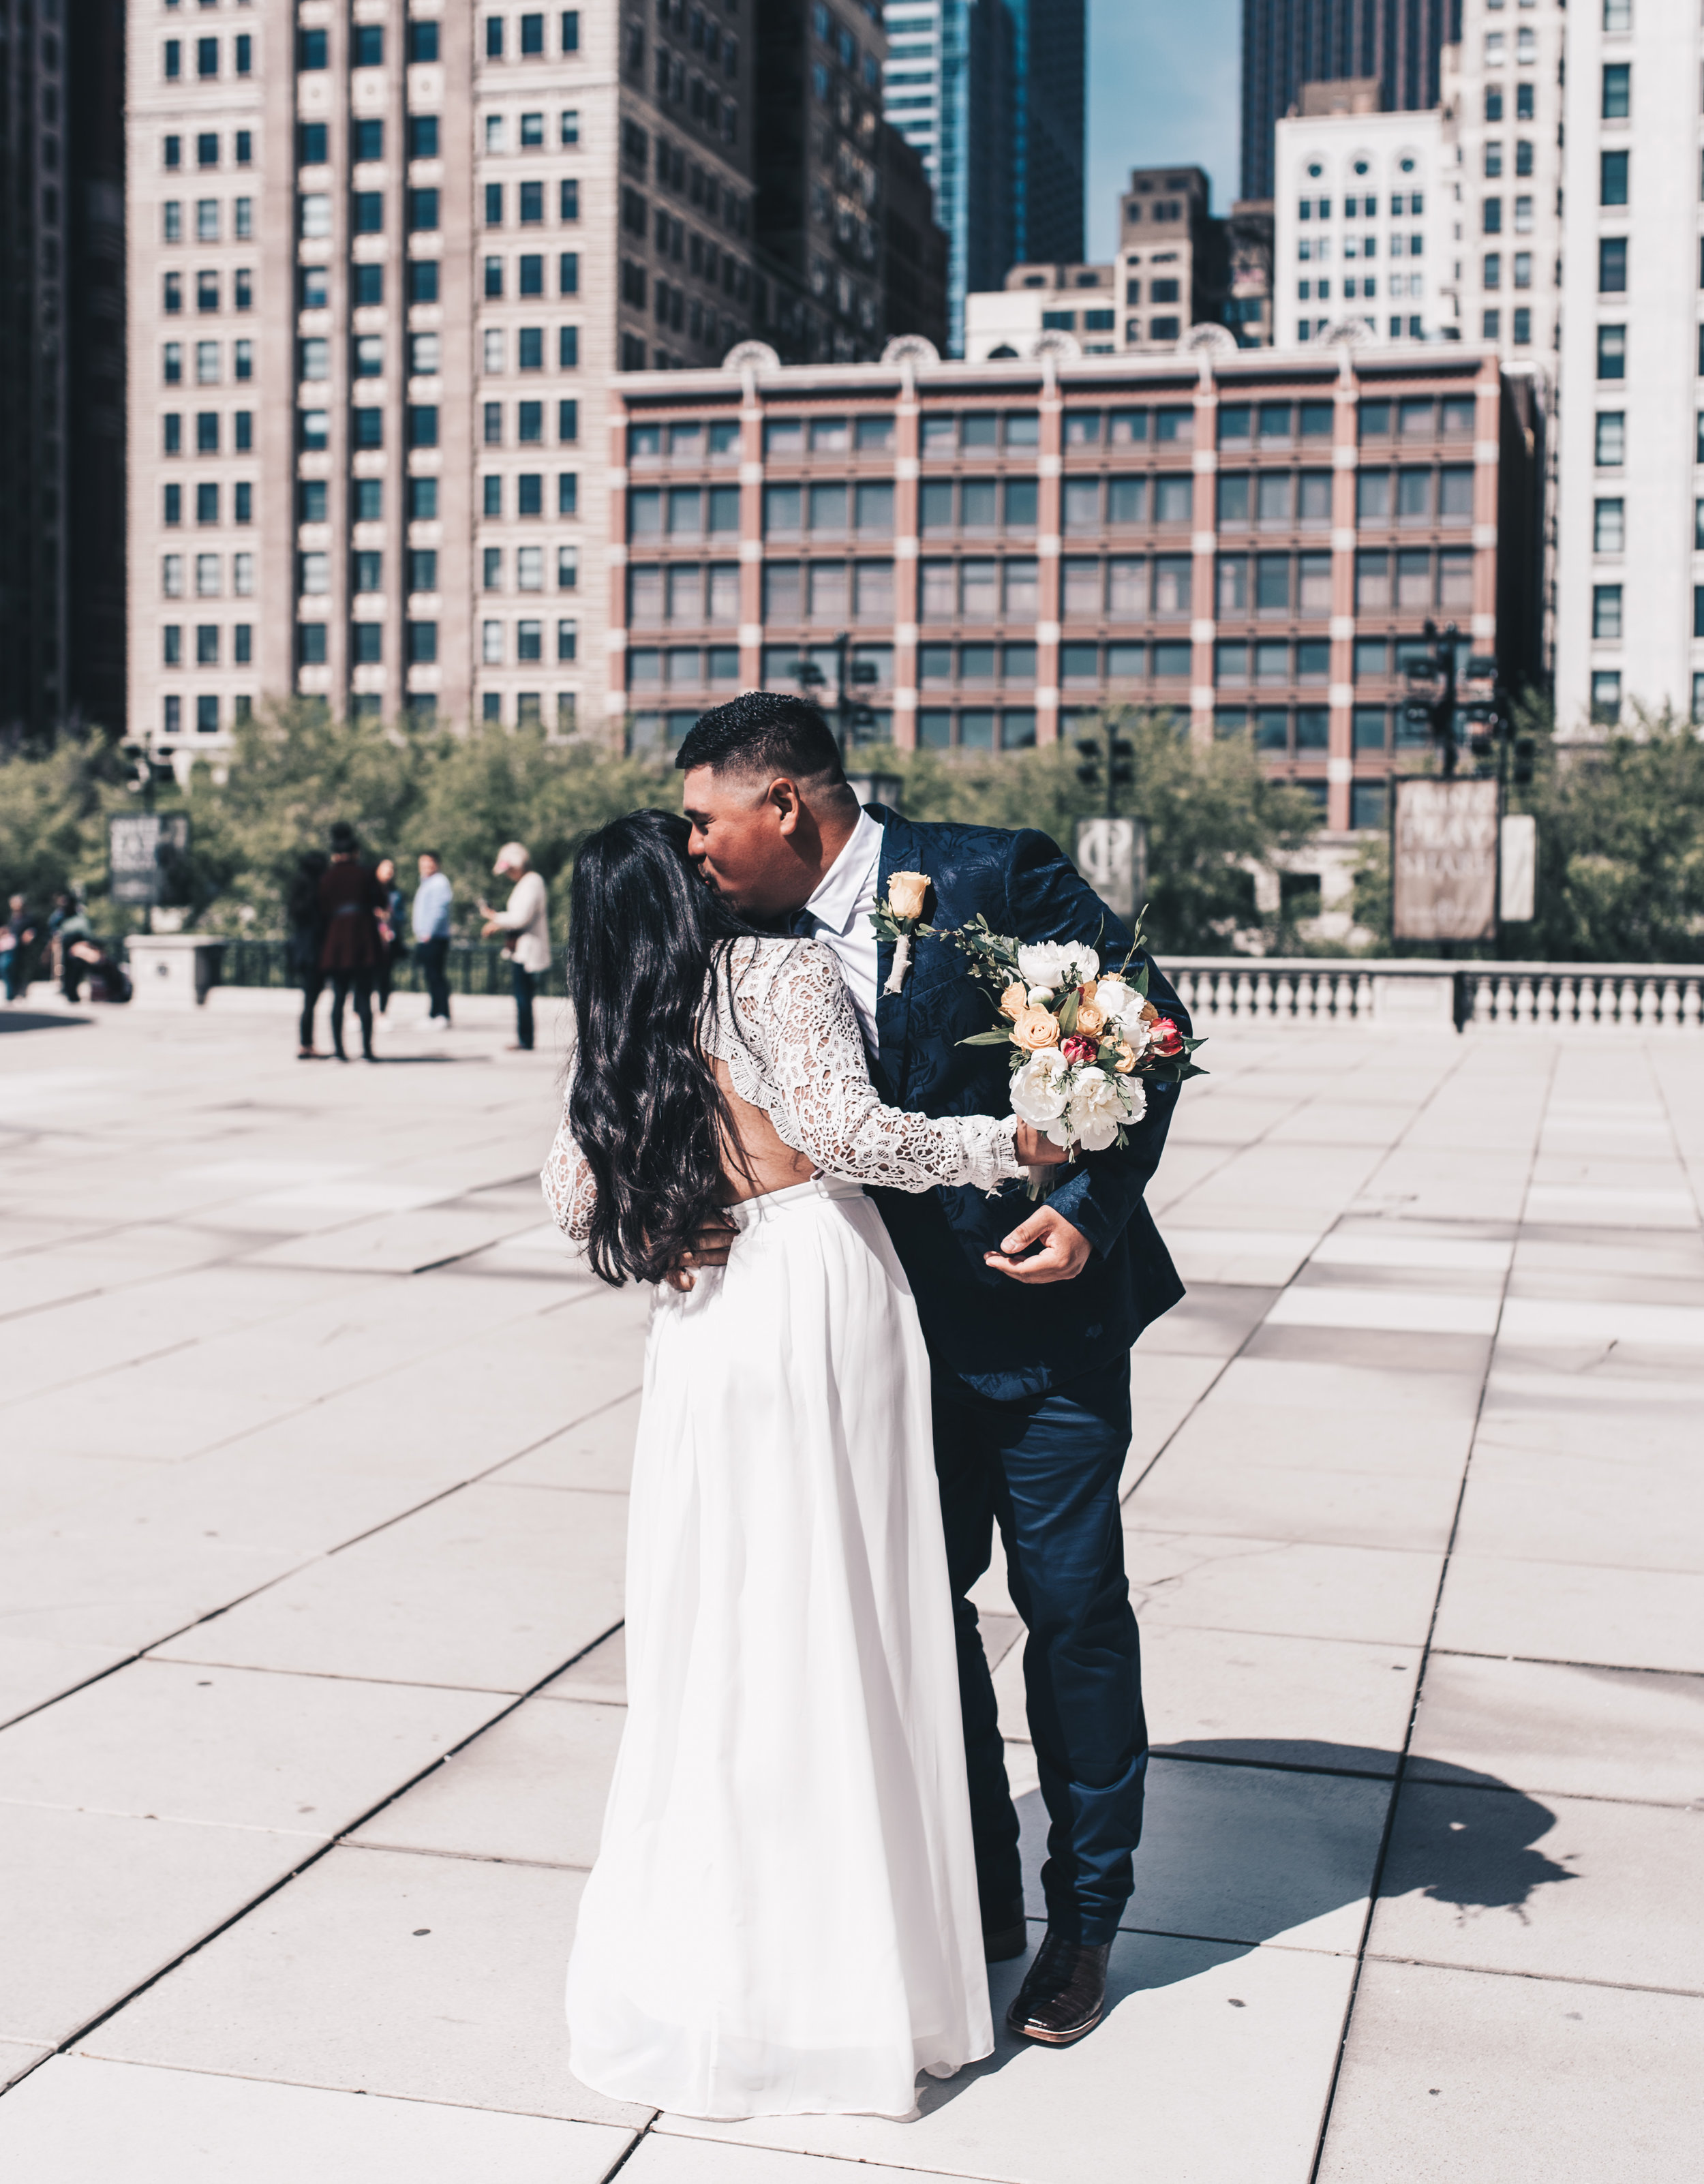 Chicago Elopement, Millennium Park Ceremony, Intimate Elopement, Getting Ready Photos, Bride and Groom, Adventurous Elopement, Chicago Elopement Photographer